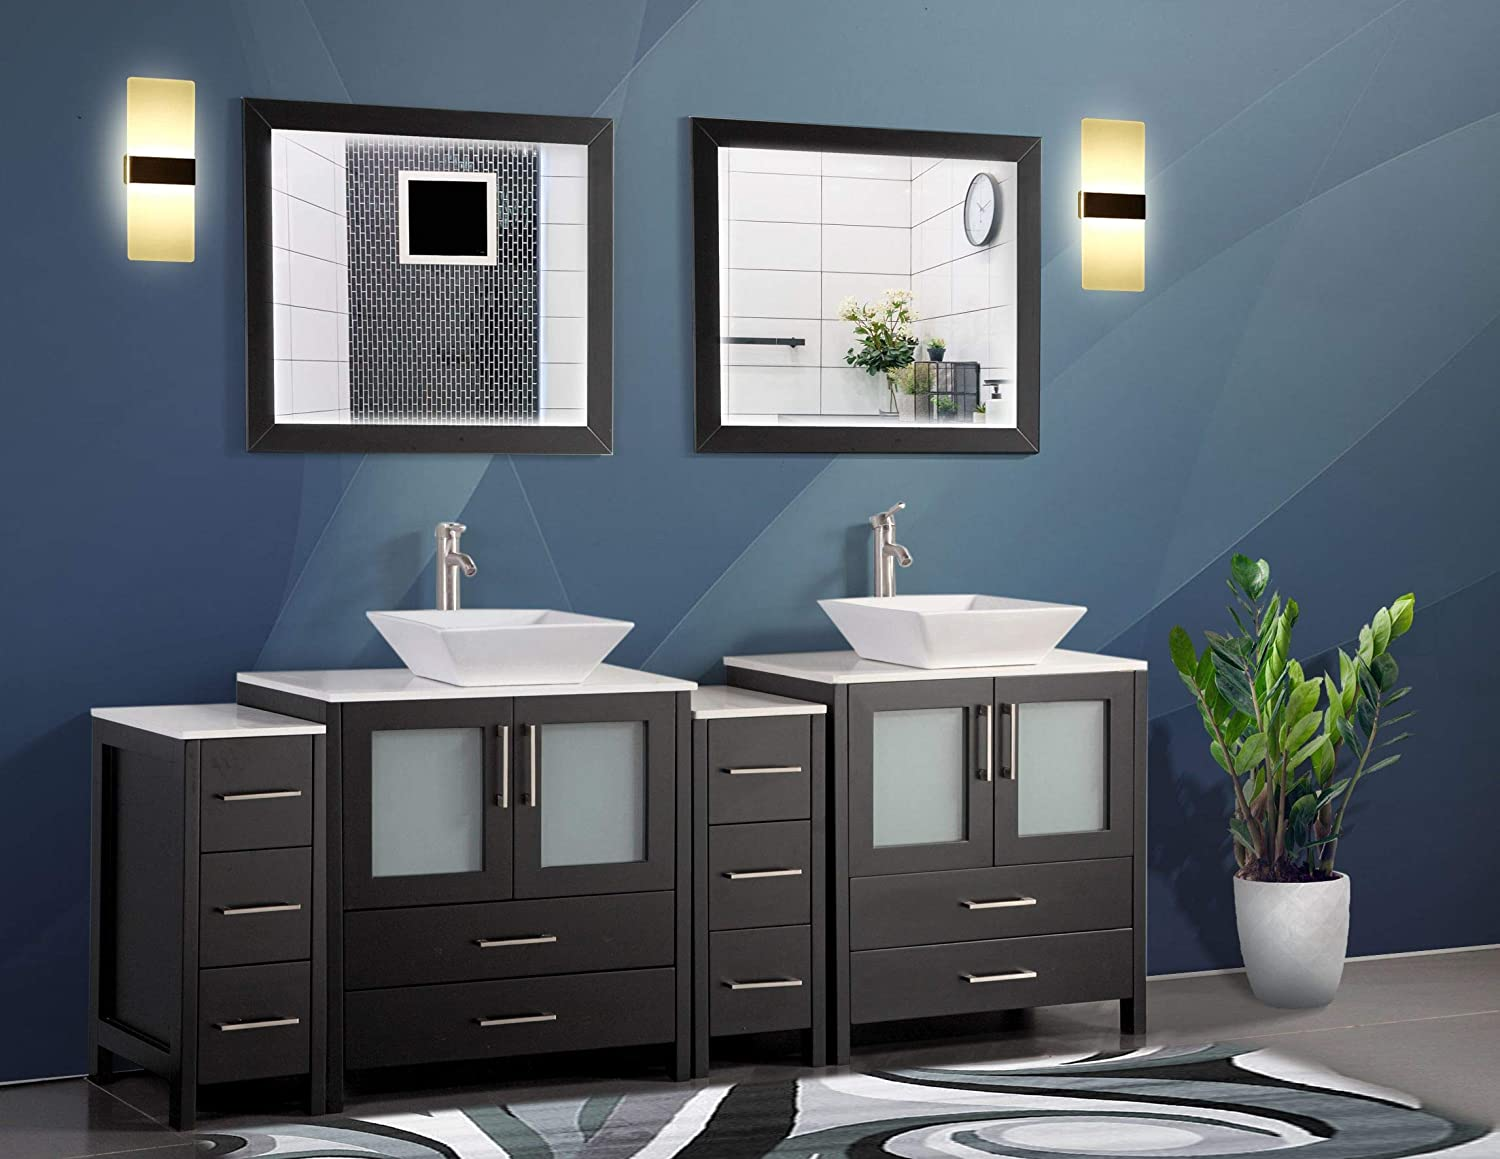 Buy Vanity Art 84 Inch Double Sink Bathroom Vanity Set 2 Shelves 10 Dove Tailed Drawers Quartz Top And Ceramic Vessel Sink Bathroom Cabinet With Free Mirrors Va3130 84 E Online In Turkey B01mto2oue